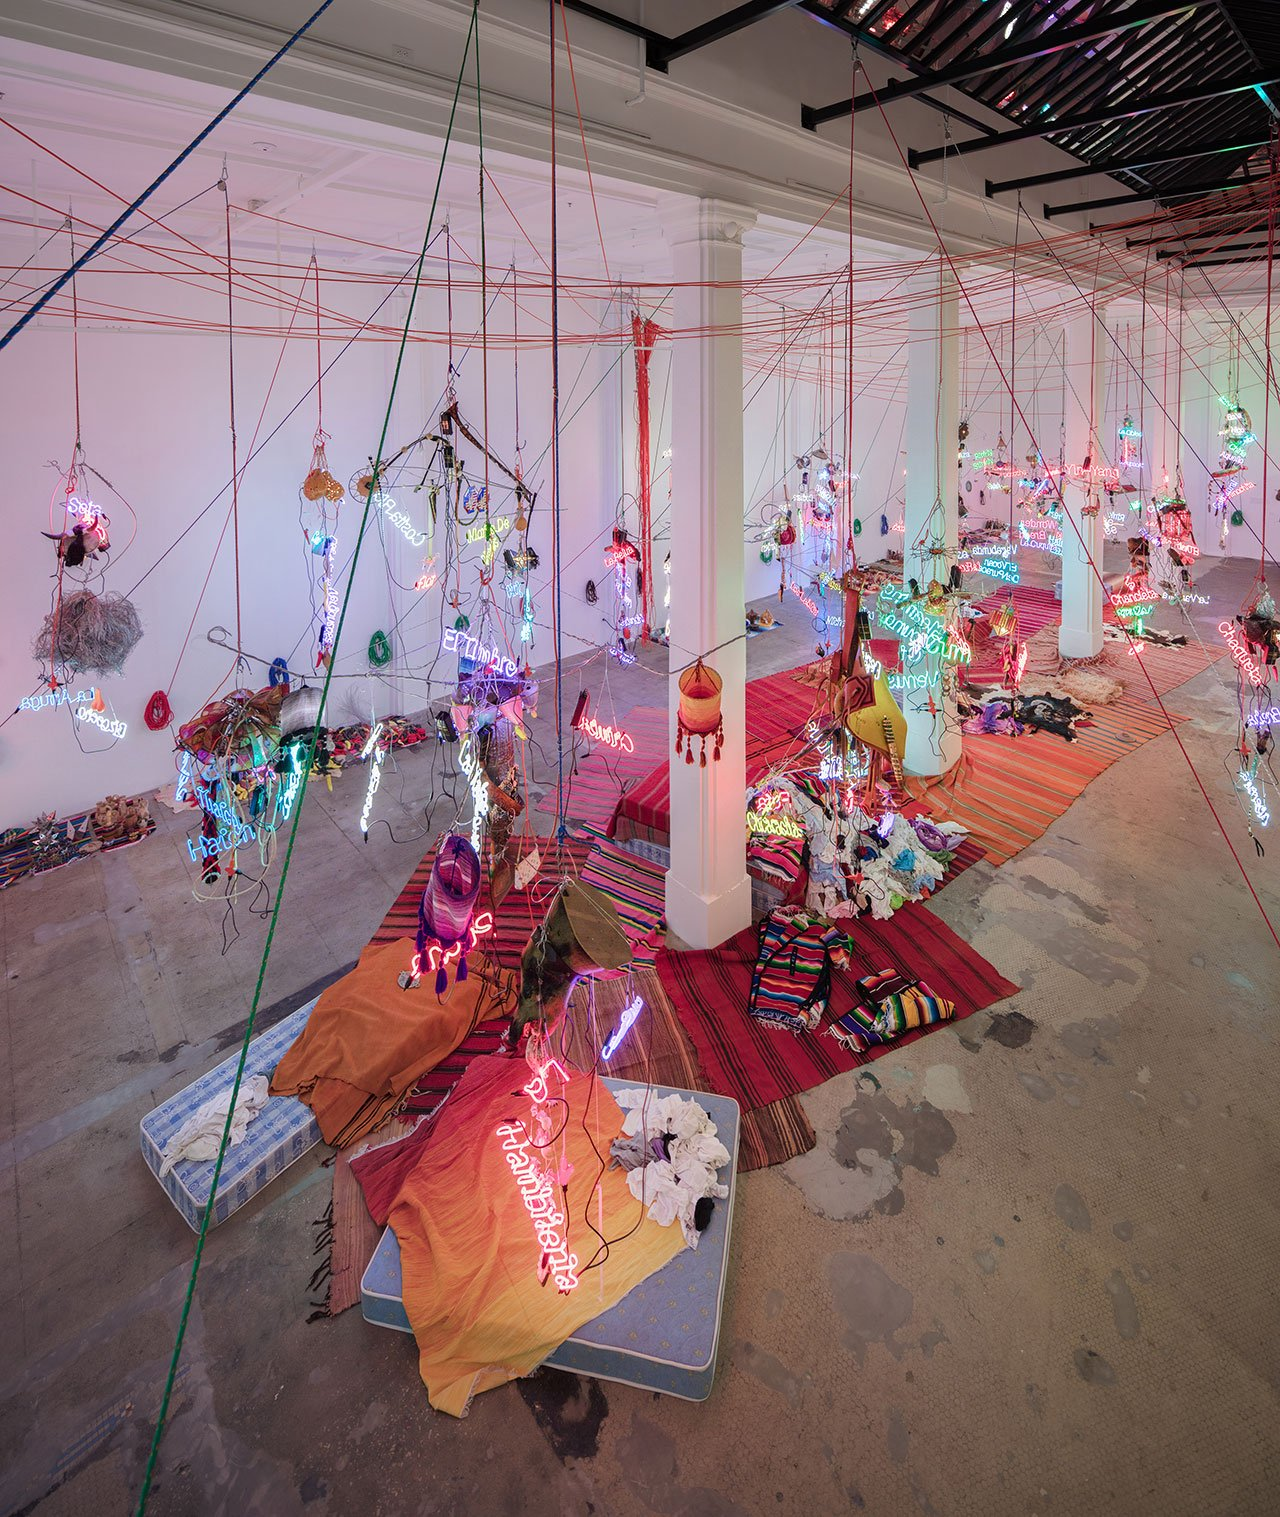 Jason Rhoades,  Tijuanatanjierchandelier, 2006.  Mixed media. Dimensions variable. Installation view, 'Jason Rhoades. Installations, 1994 – 2006', Hauser & Wirth Los Angeles, 2017. © The Estate of Jason Rhoades. Courtesy the estate, Hauser & Wirth, David Zwirner and lender. Photo by Fredrik Nilsen.